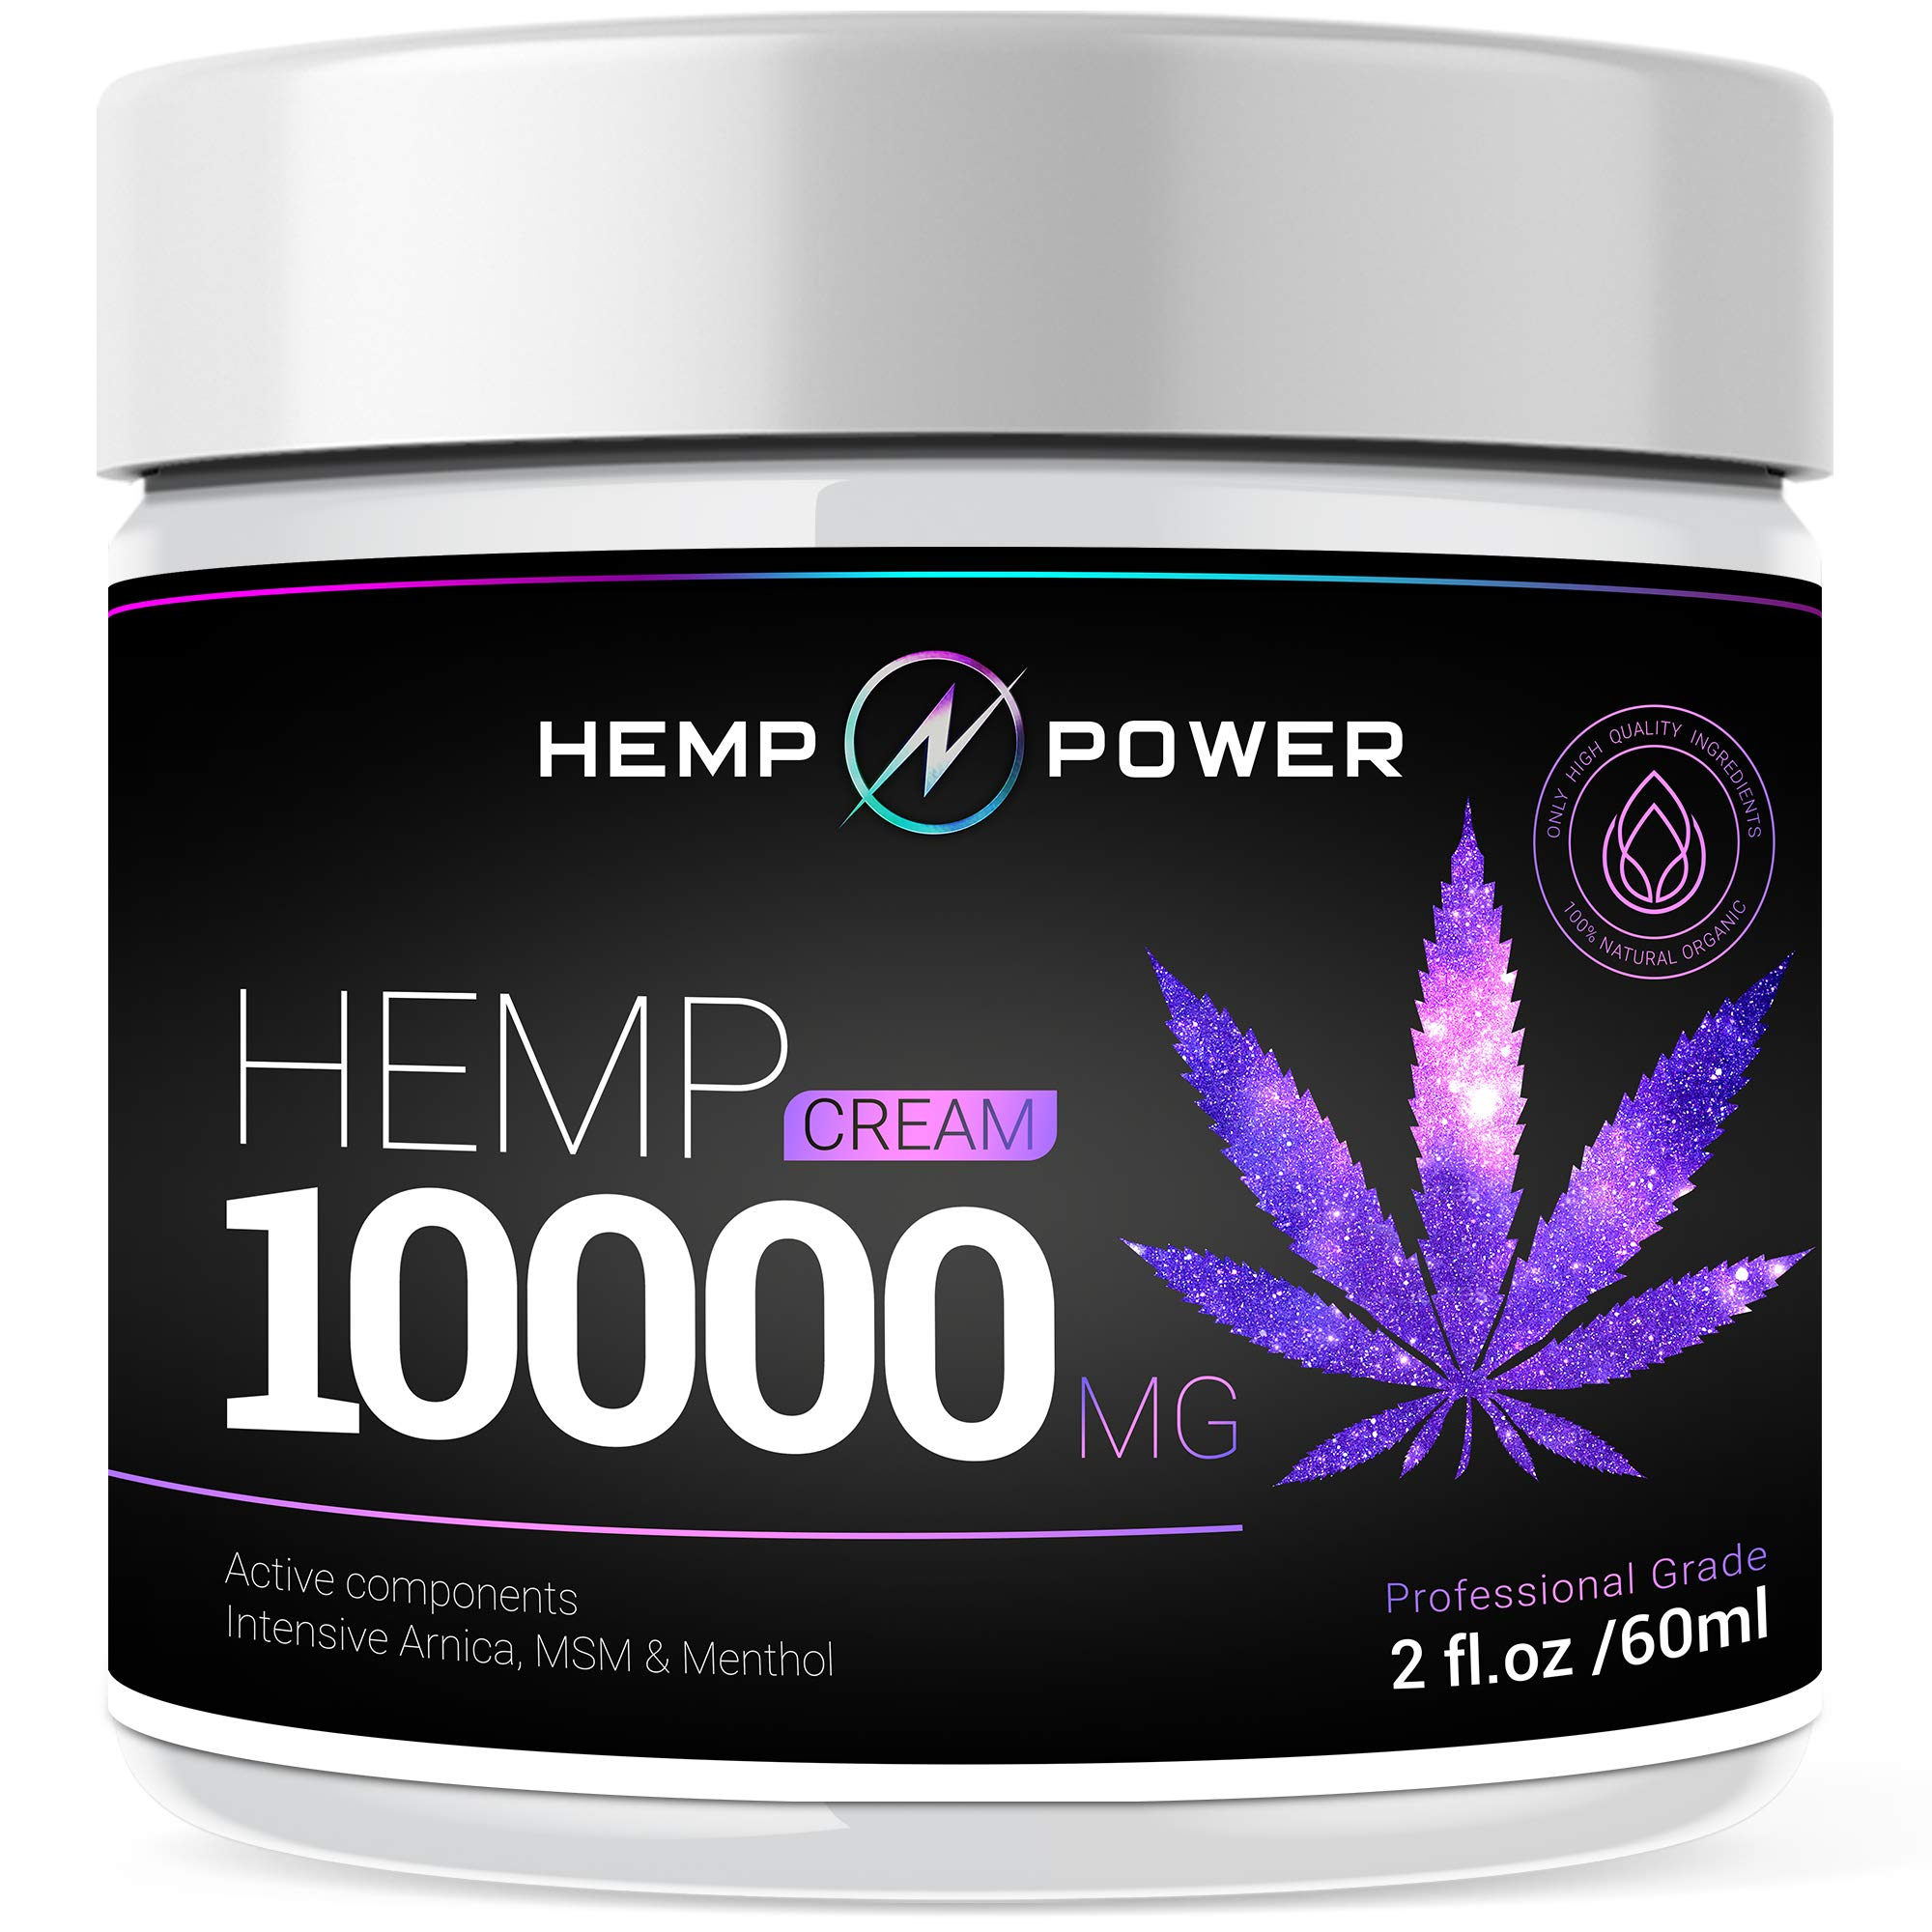 Hemp Power Pain Relief Cream - 10000MG - Relieves Muscle, Joint Pain, Lower Back Pain, Knees, and Fingers - Inflammation - Hemp Extract Remedy - Hemp Oil with MSM - Arnica - Turmeric by Hemp Power by HEMP POWER